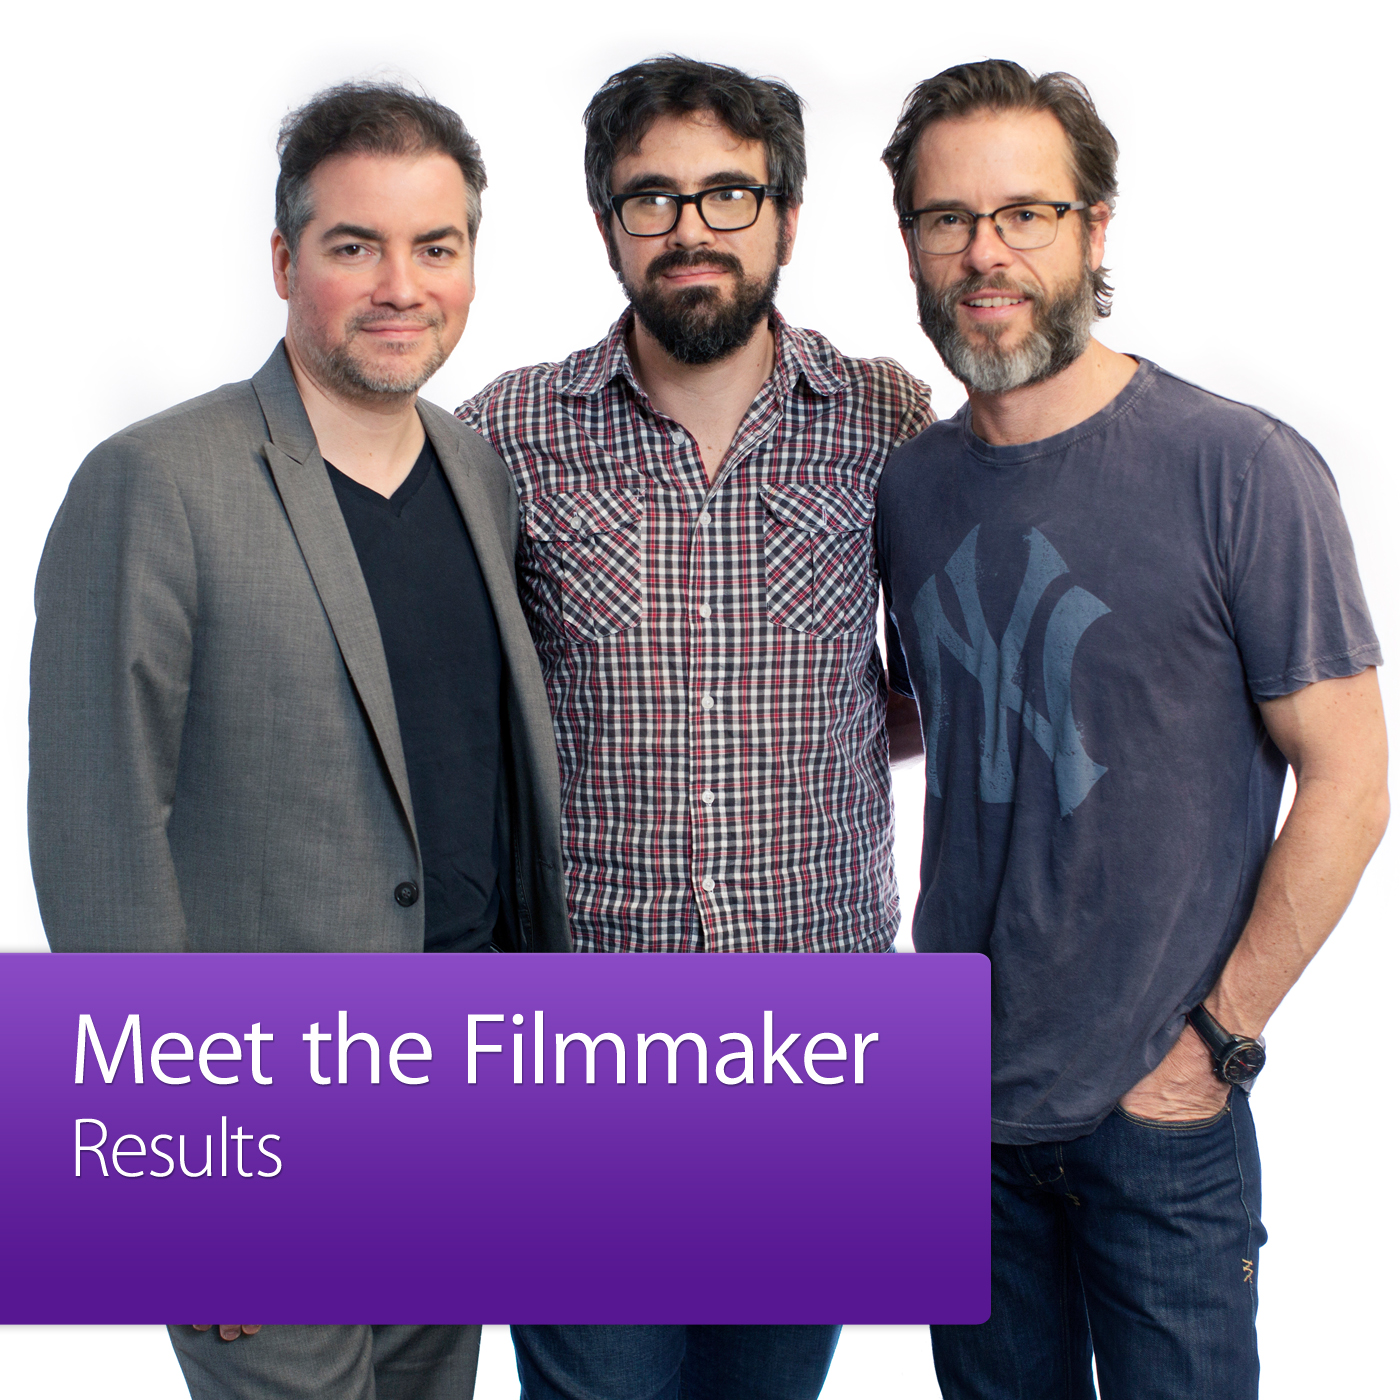 Results: Meet the Filmmaker